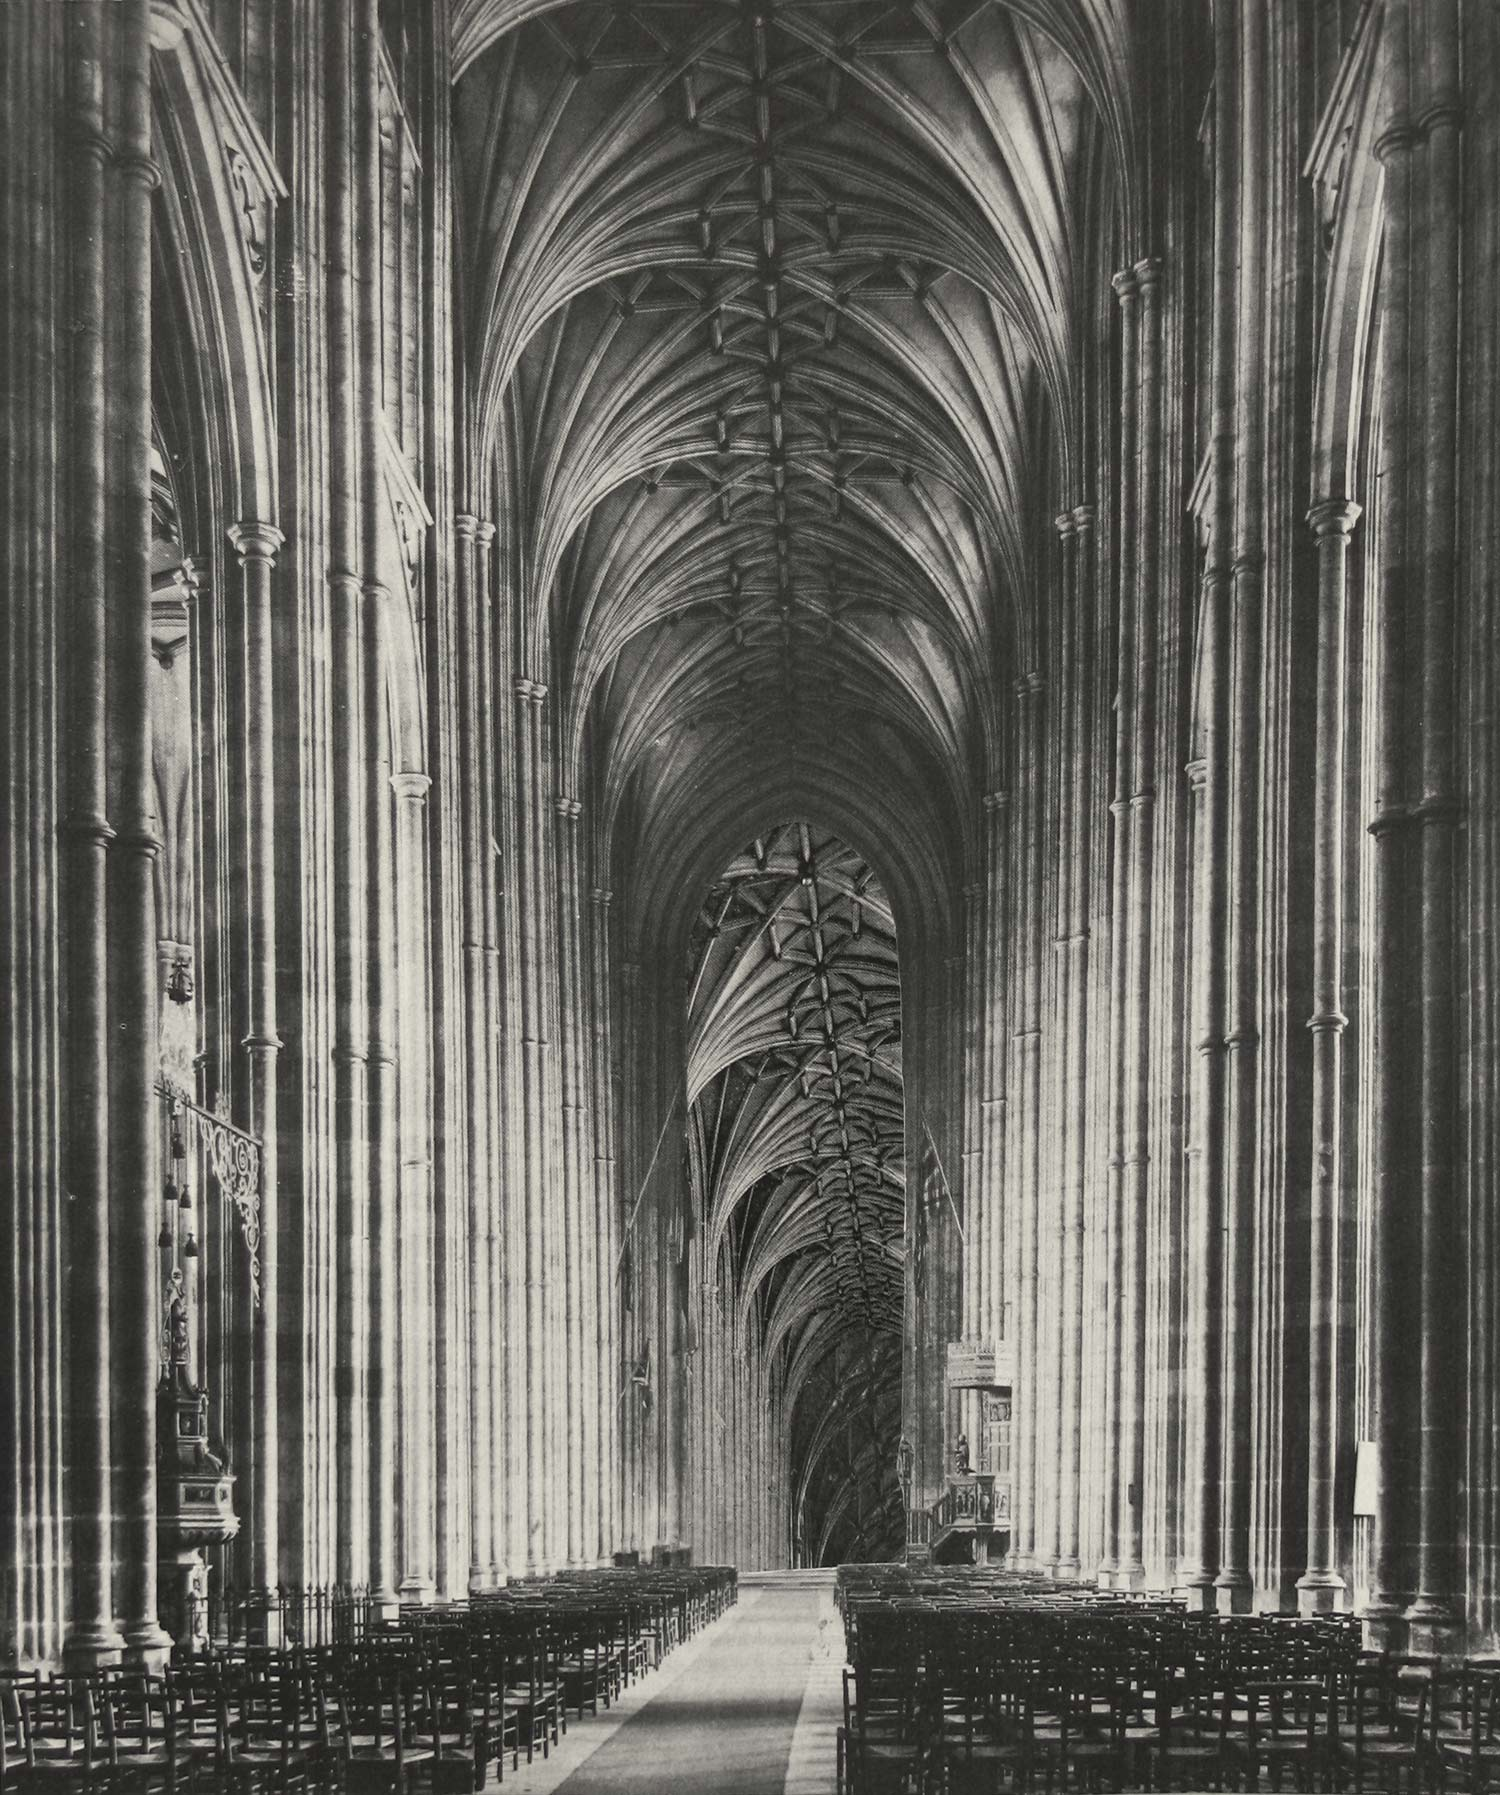 Infinite cathedrals V, 2015